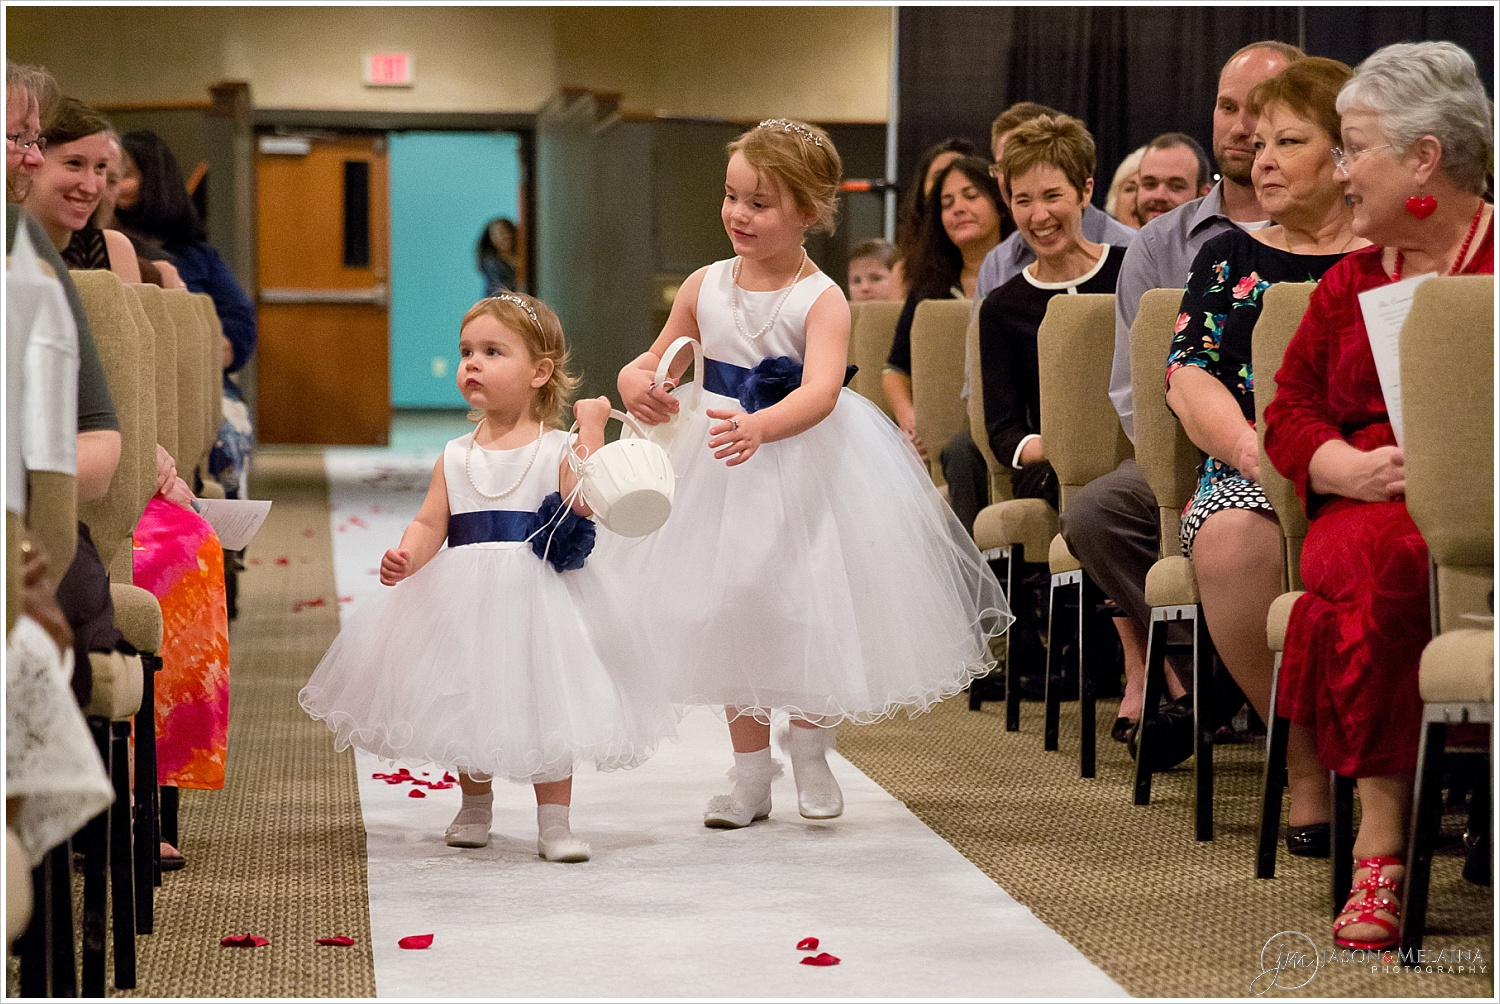 Young flower girls dressed in white dresses with navy bows walk down the aisle